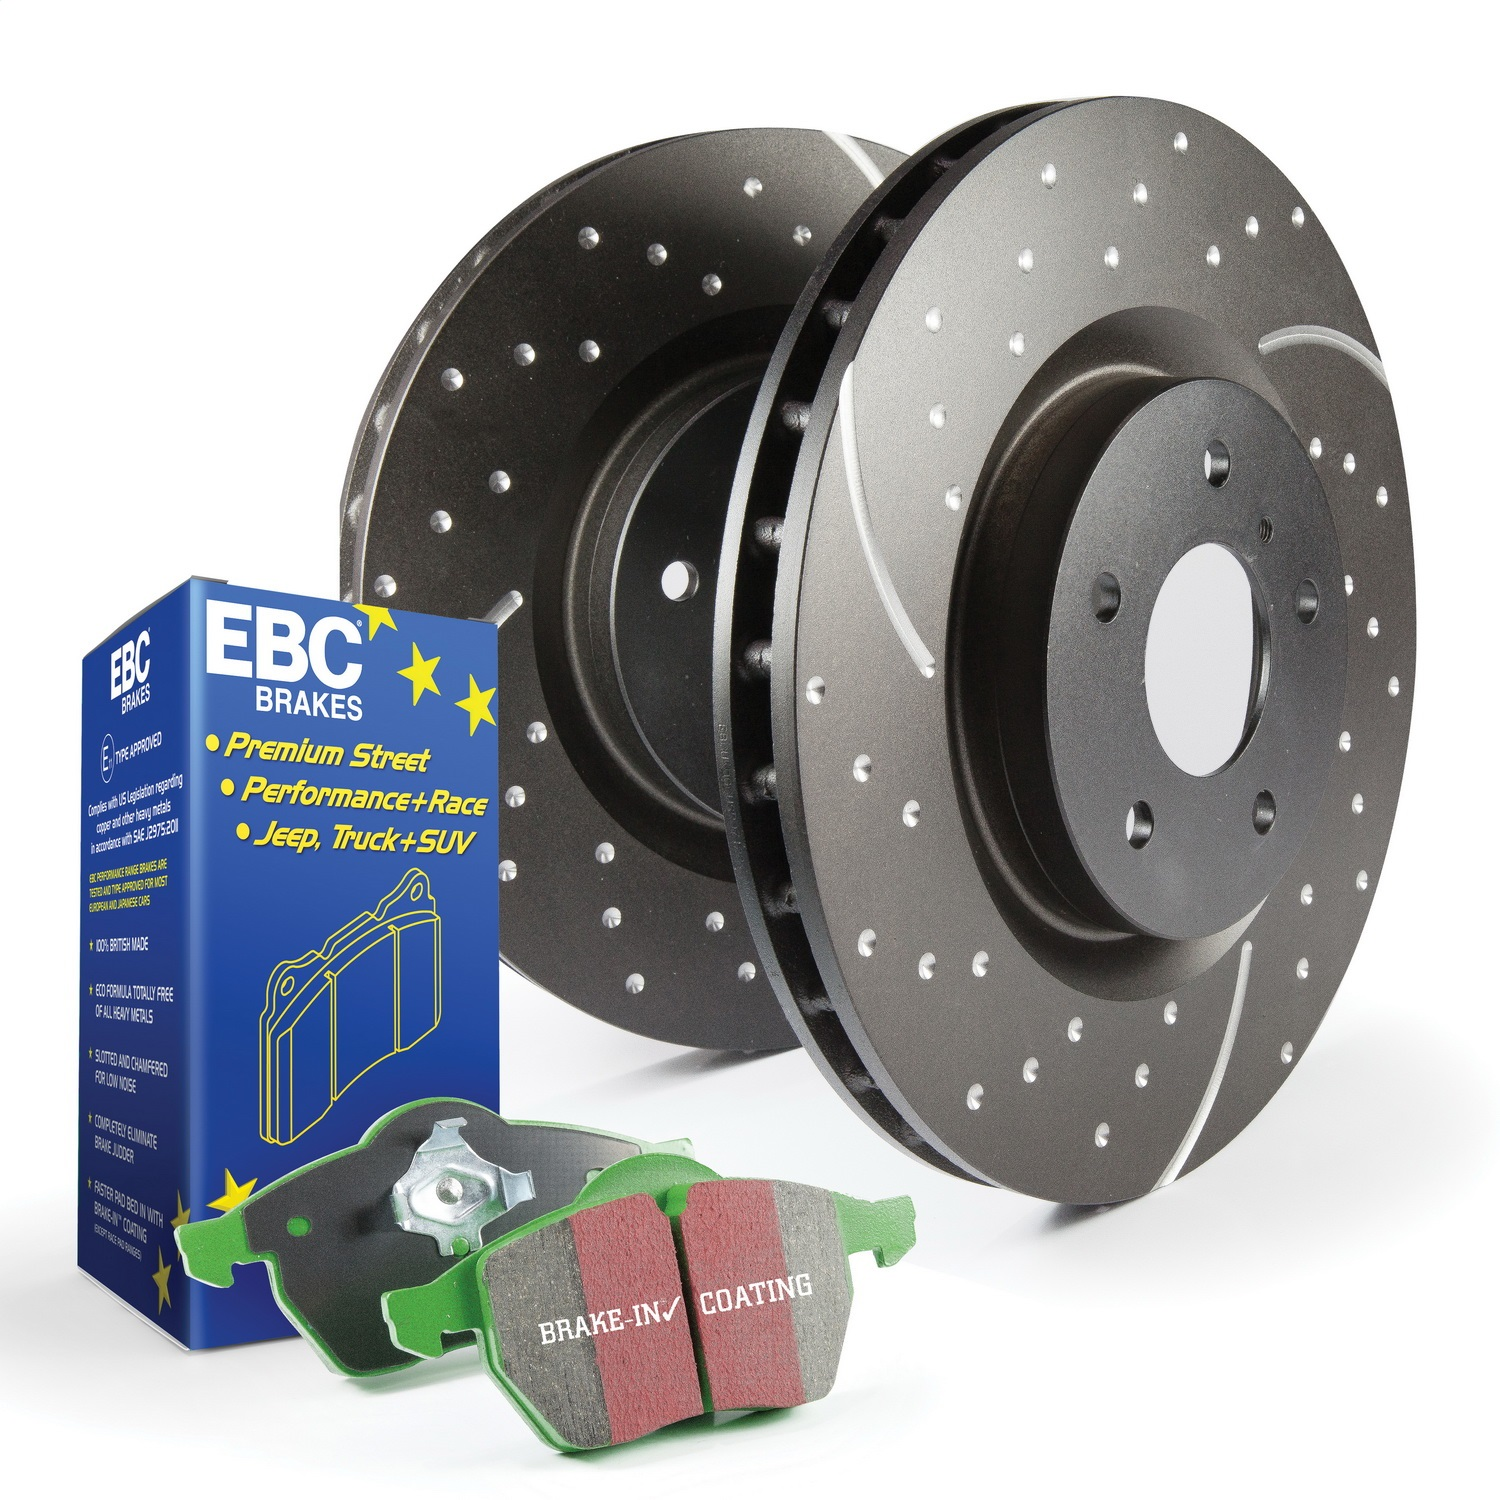 EBC Brakes S3KR1180 S3 Kits Greenstuff 6000 and GD Rotors Truck and SUV